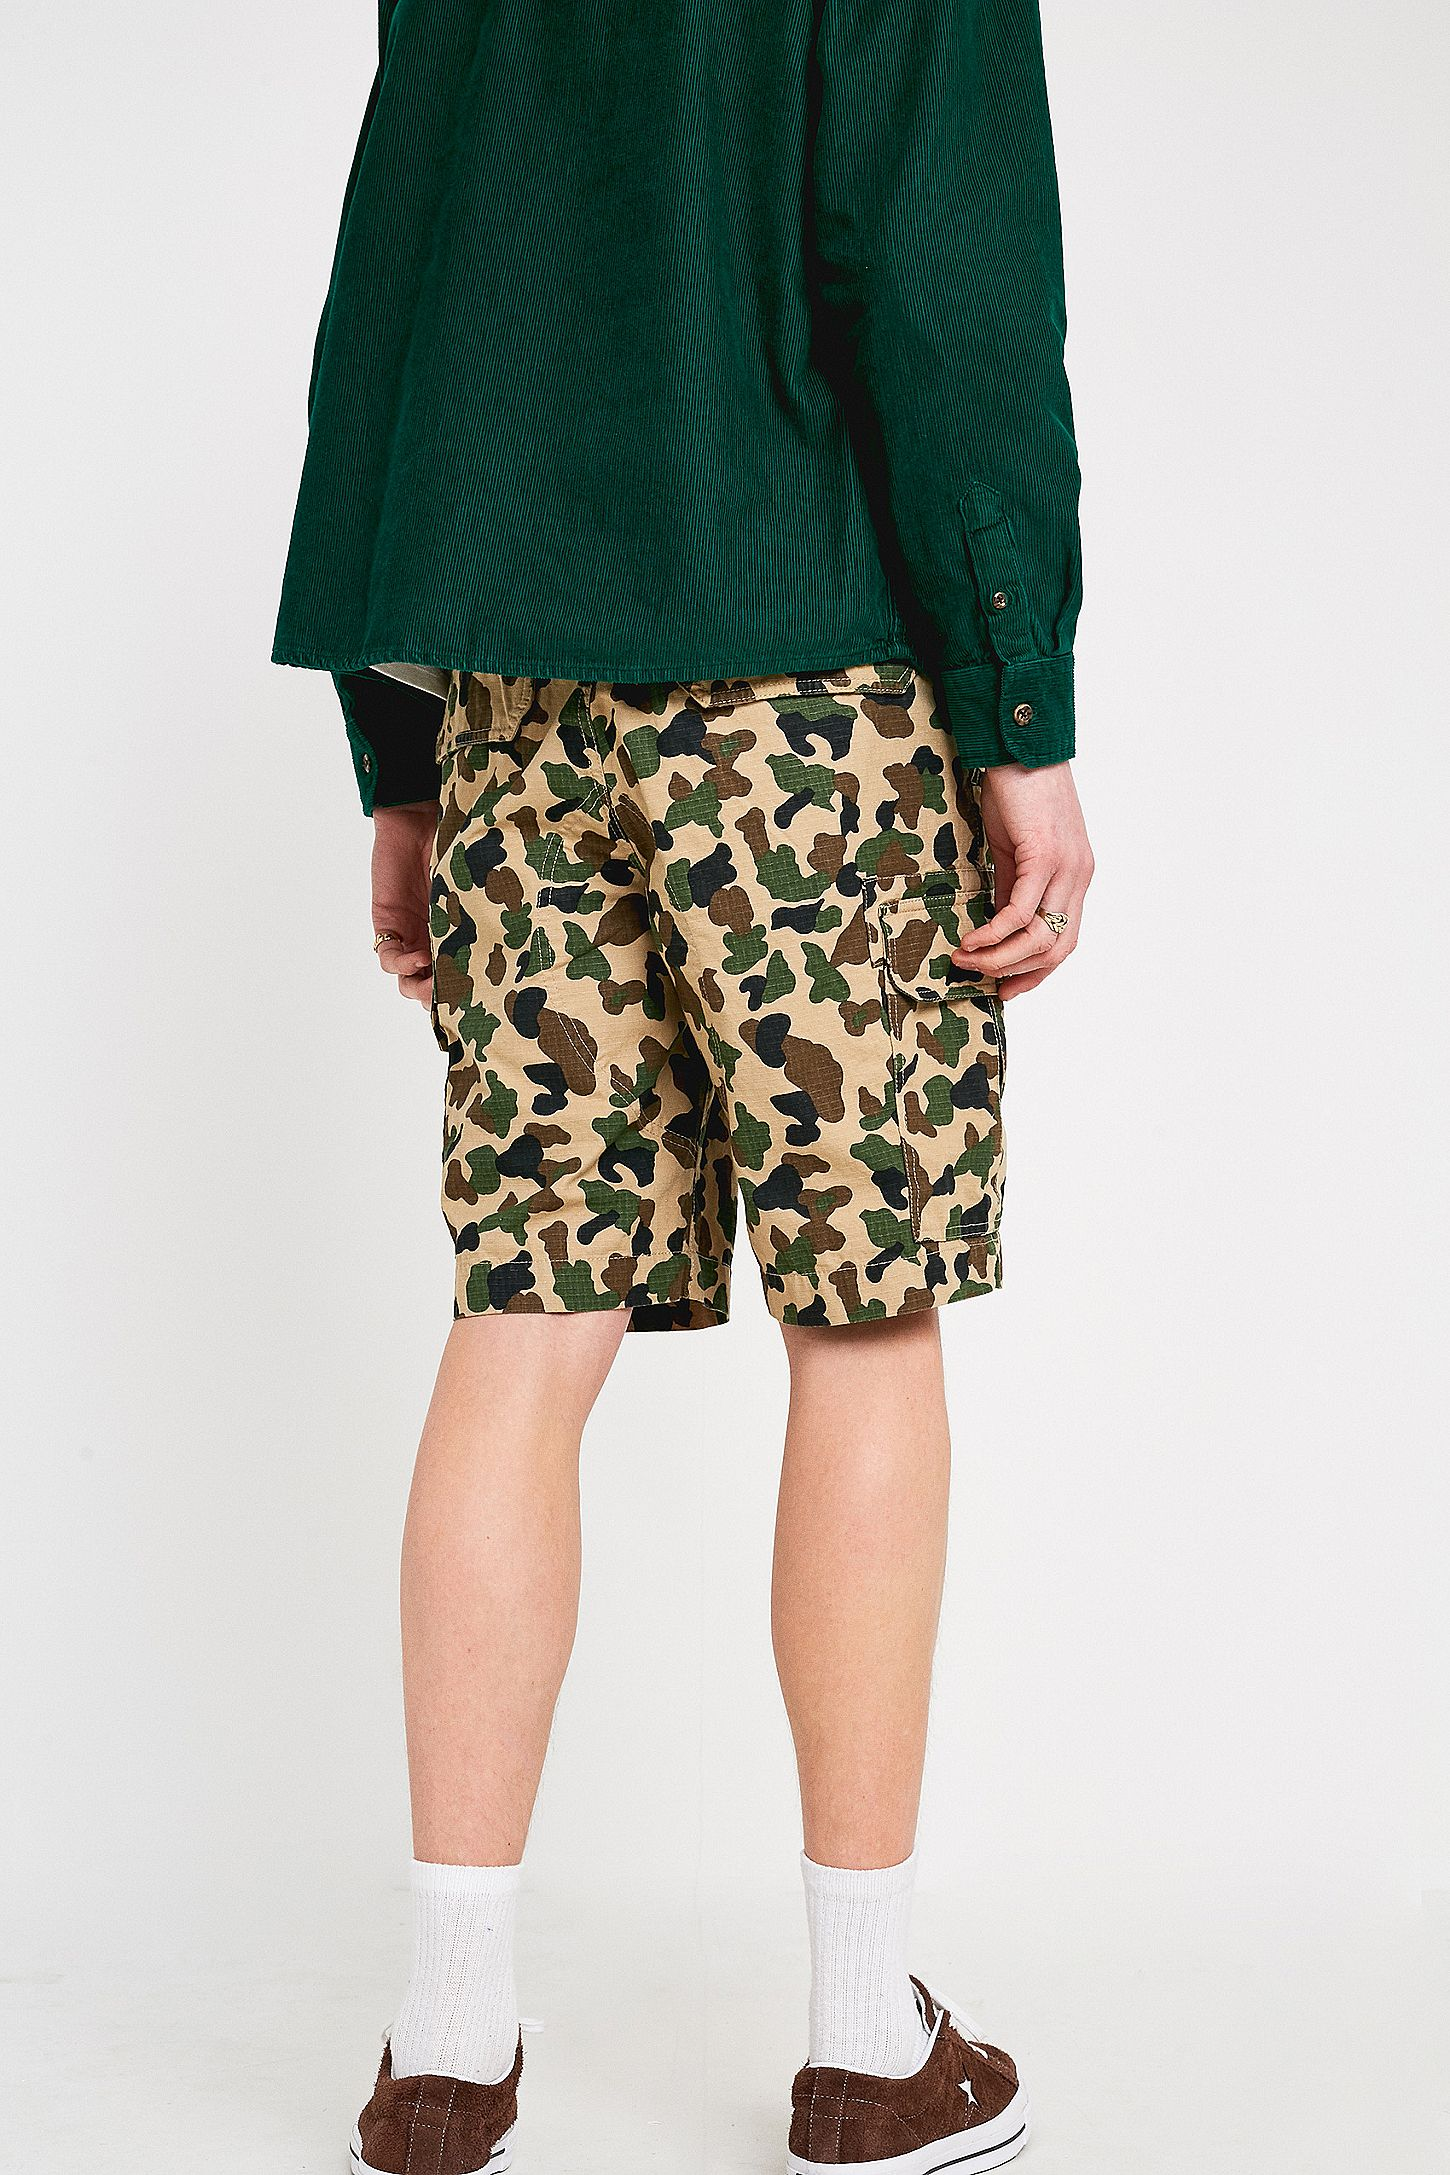 c84c0075ab Dickies New York Camo Shorts | Urban Outfitters UK